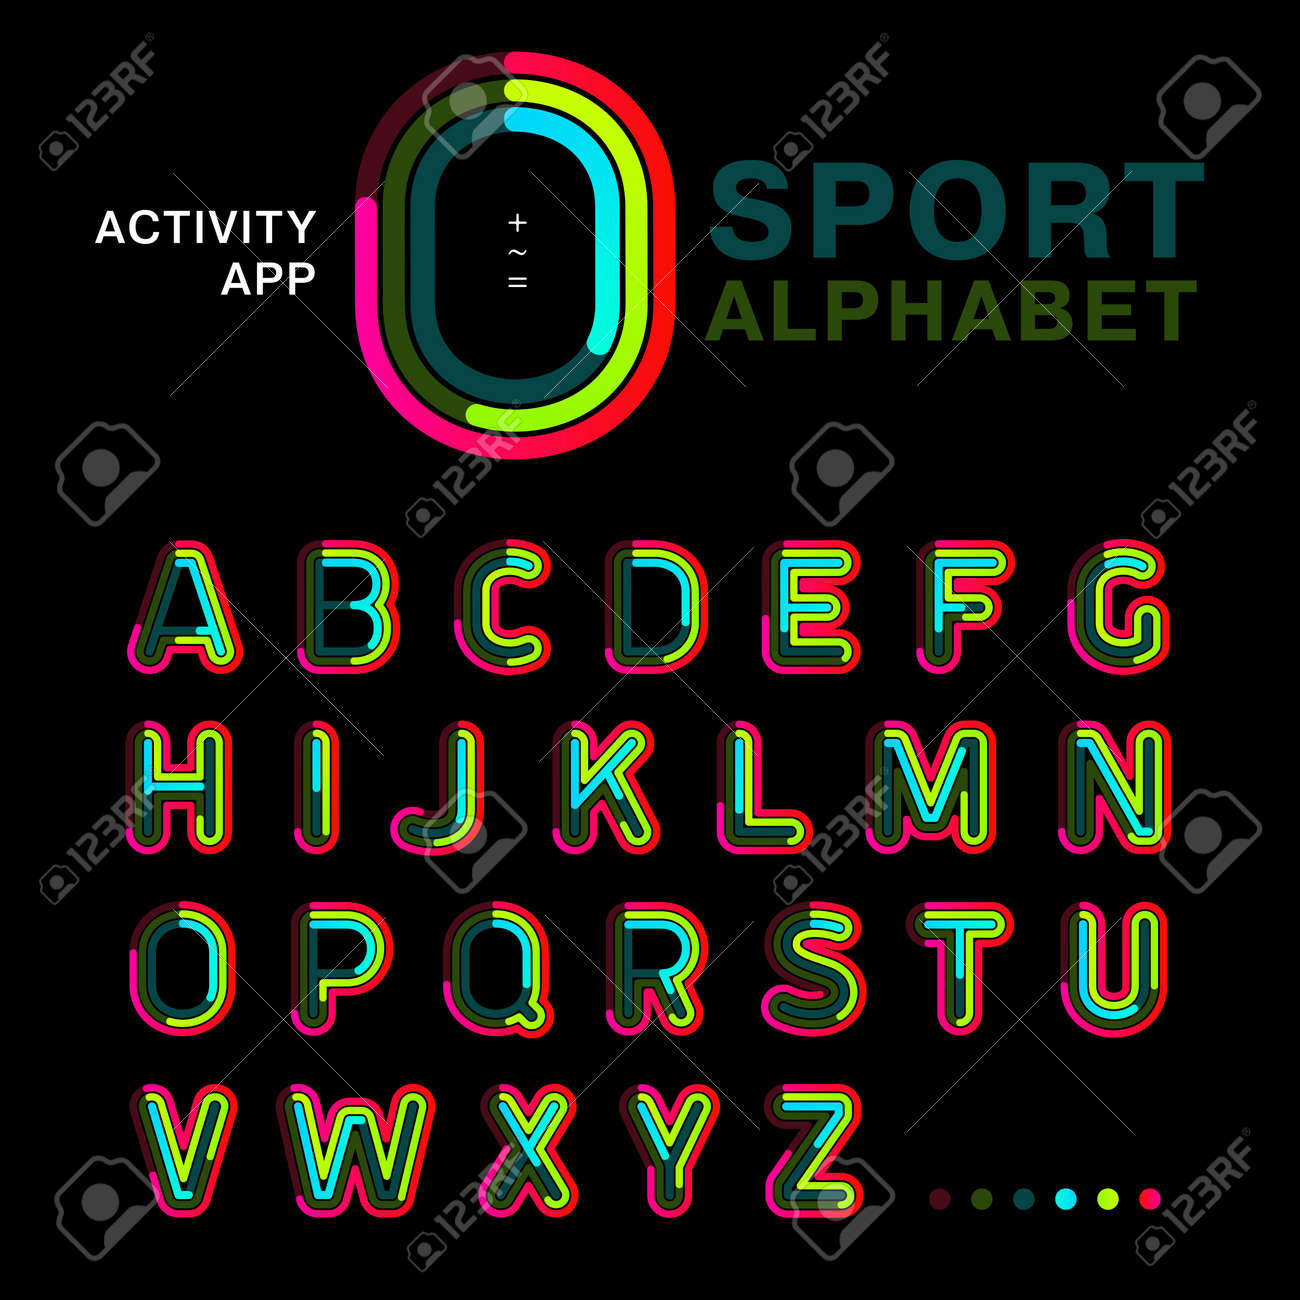 Bright colorful font line written symmetrically on a black background. Modern concept alphabet to be used for an app activity, interface and sports. Sample of vector illustration. - 125772472